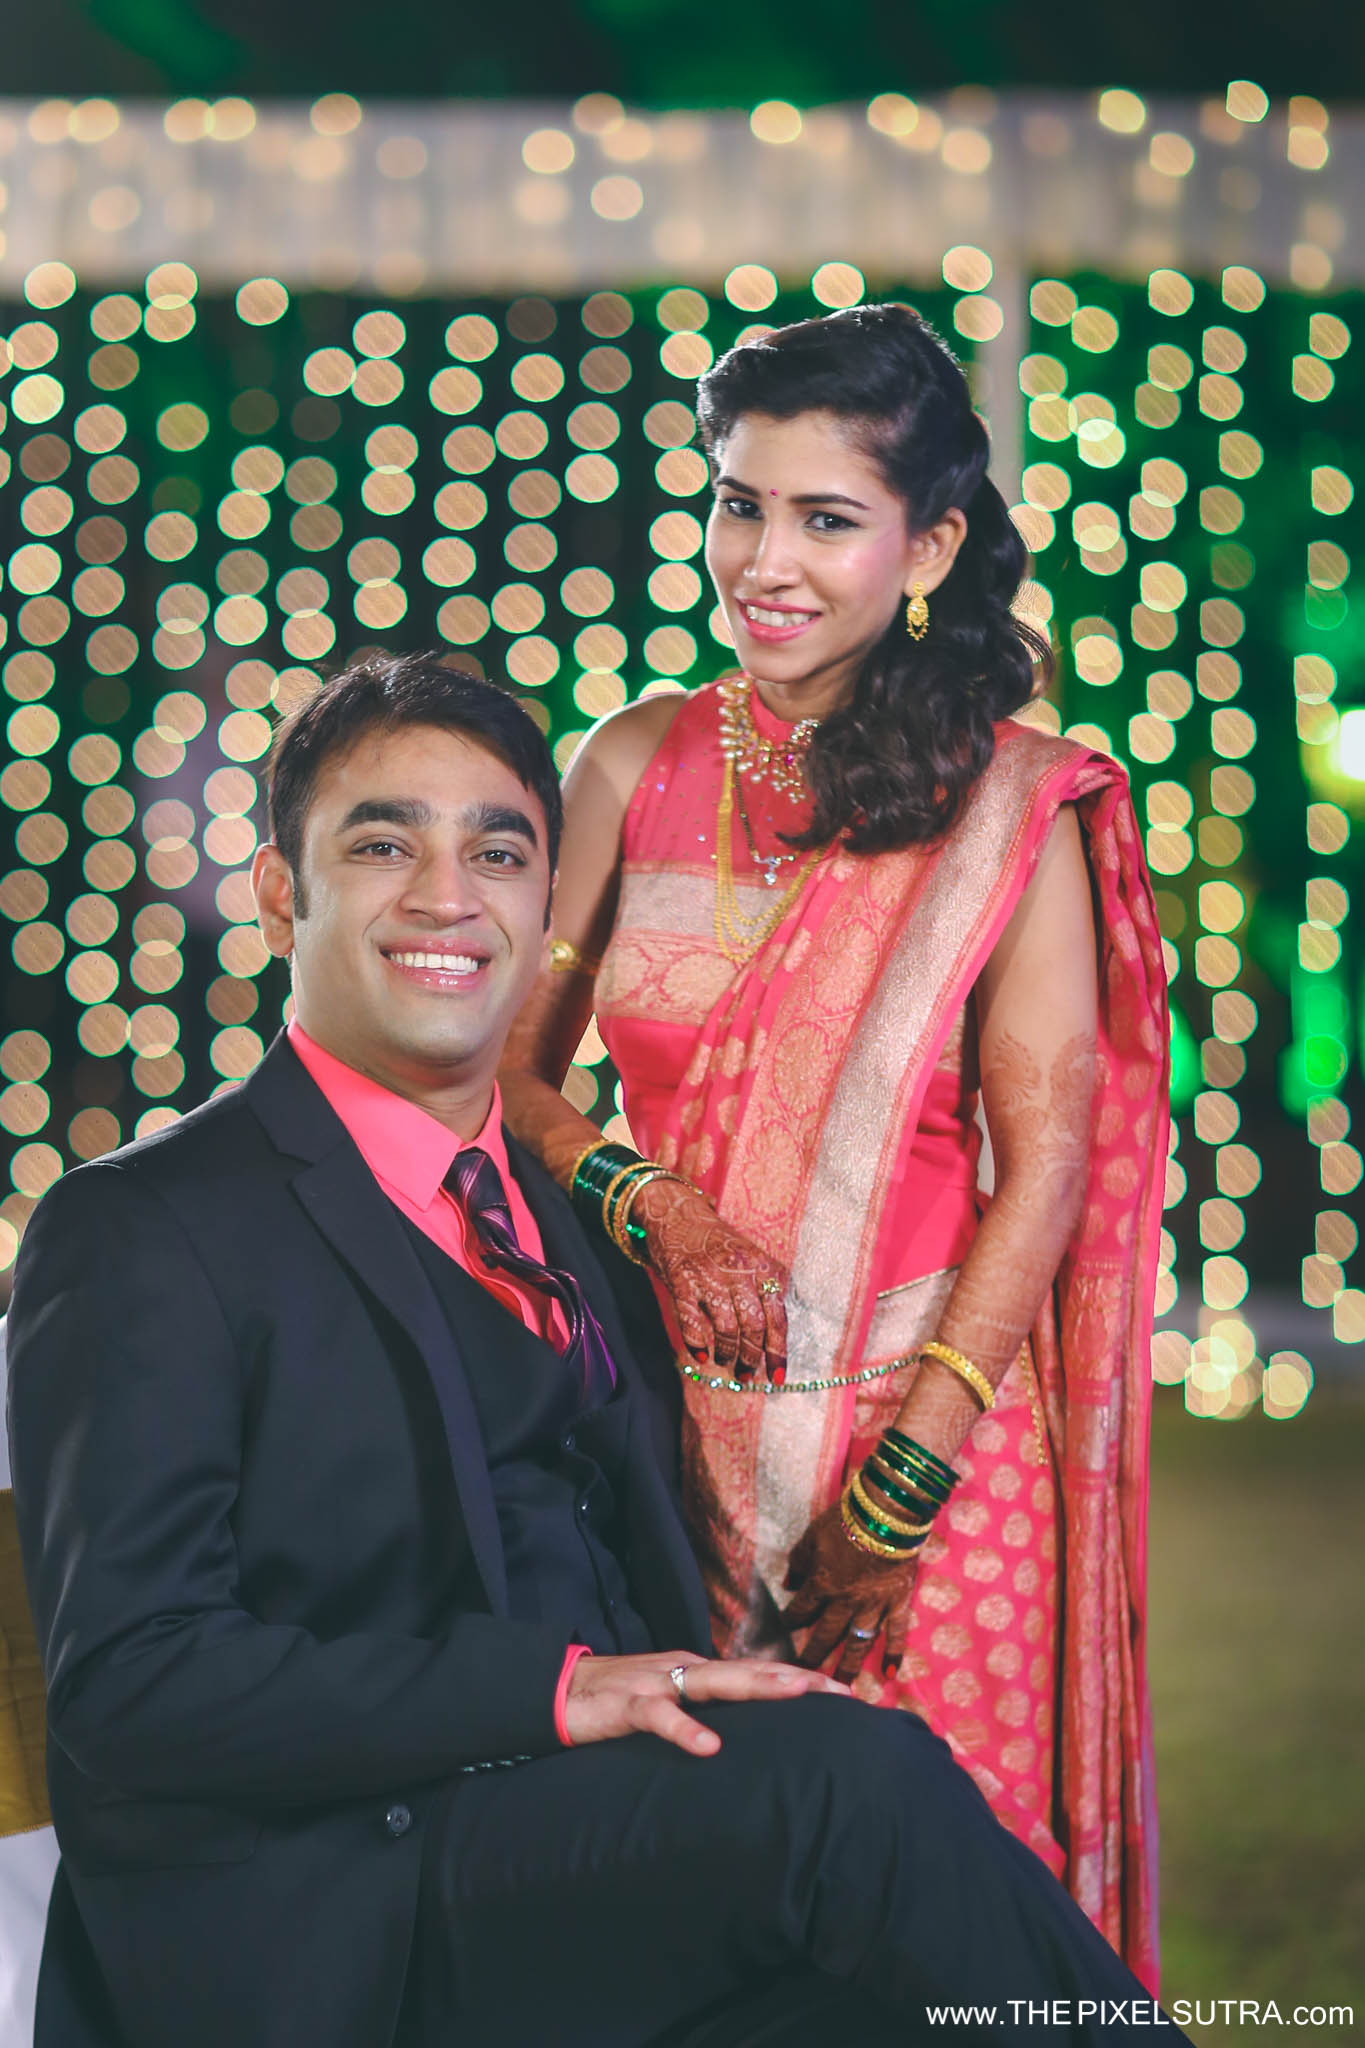 The Pixel Sutra Nachiket x Priyanka Candid Wedding photographer Mumbai Best  (64).jpg